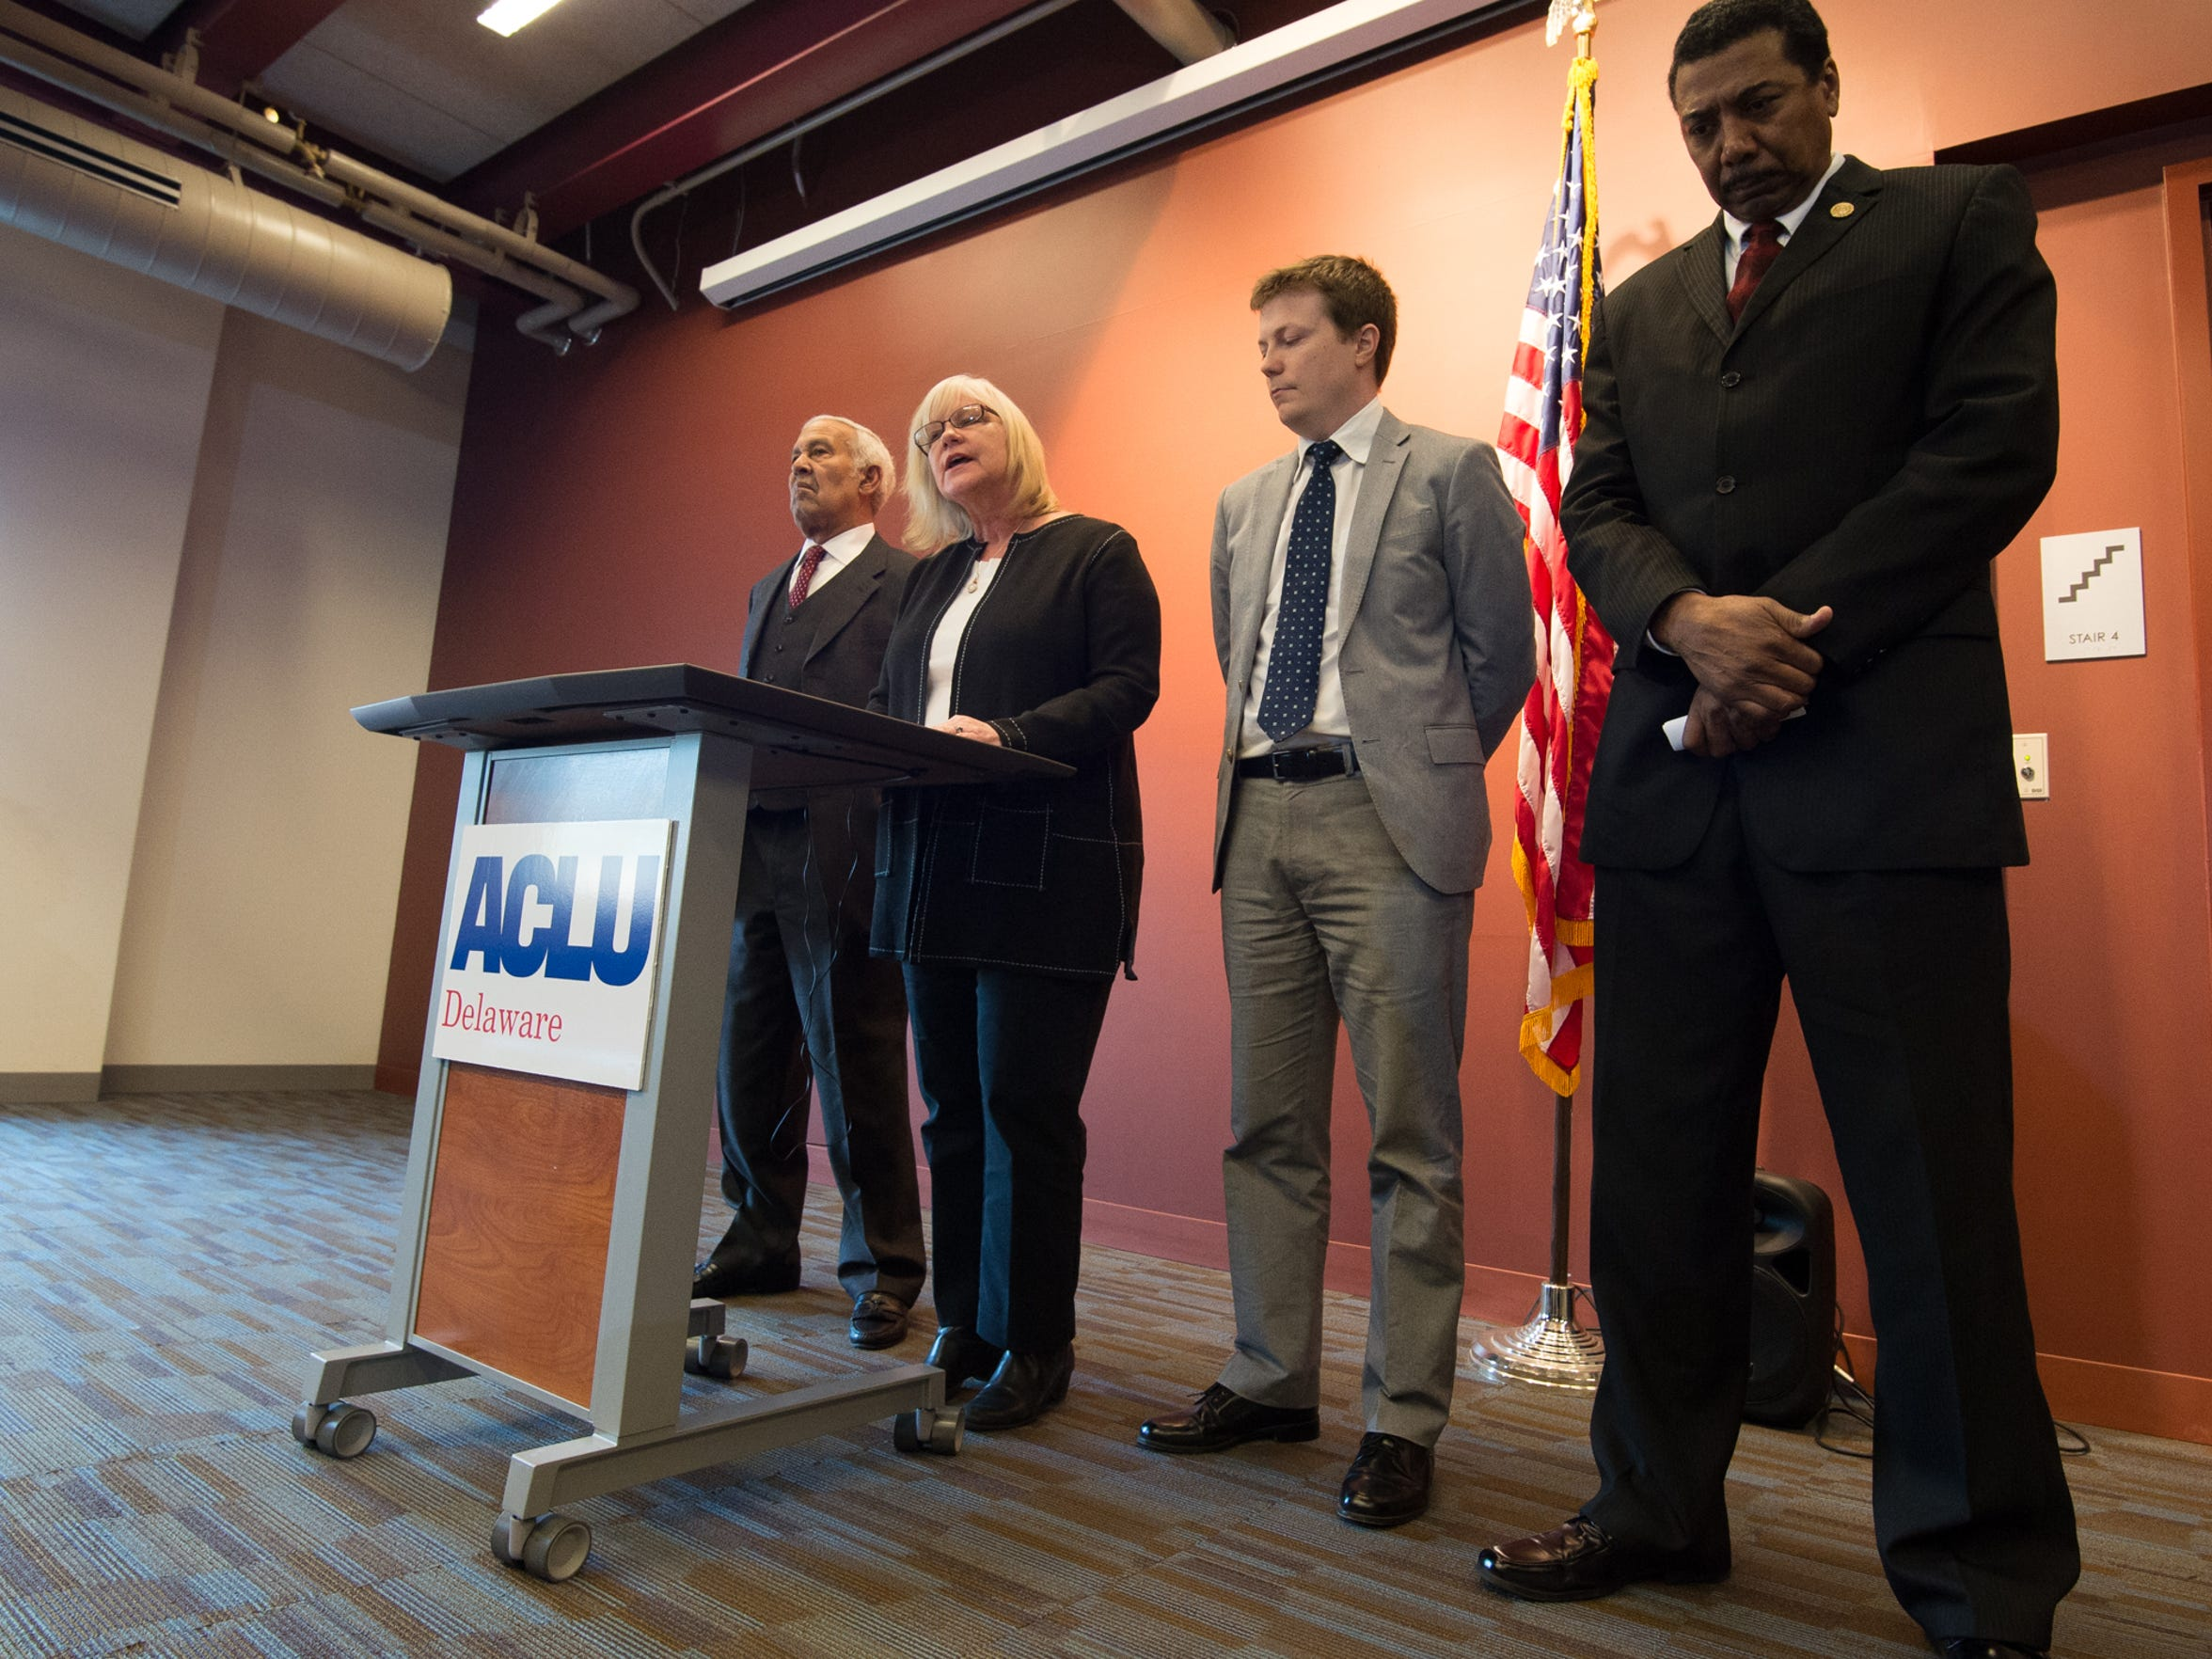 Kathleen MacRae, executive director of ACLU Delaware, speaks during a press conference concerning their lawsuit challenging the state's allocation of resources to schools.